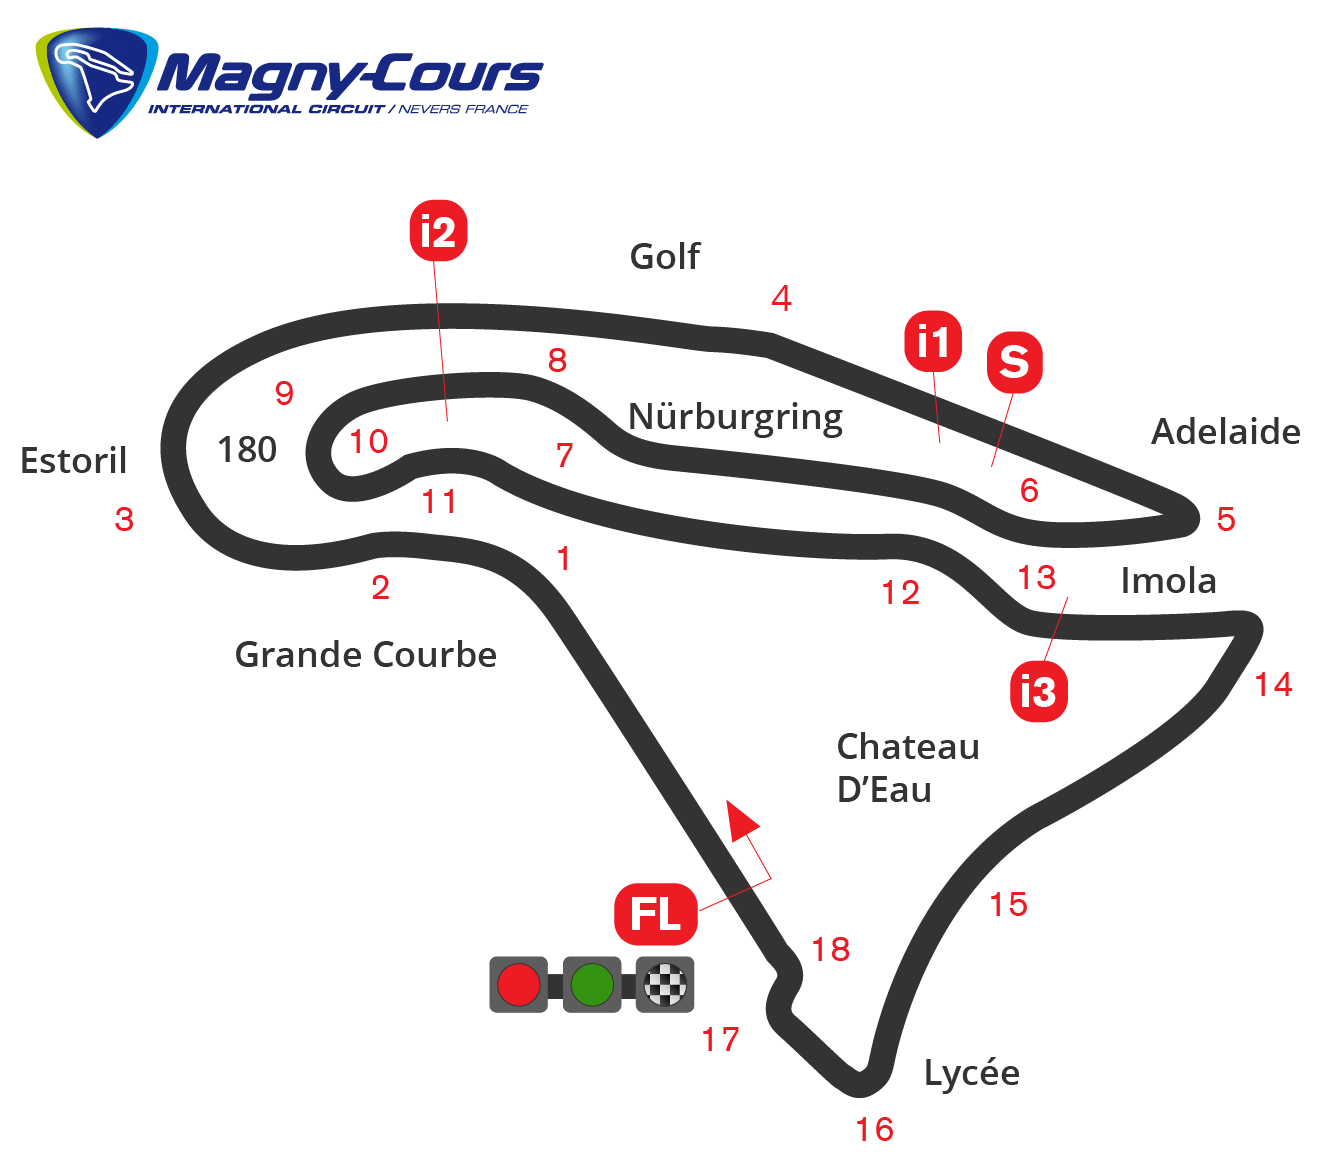 Frankrijk, 2005, 2019 - Magny Cours - not recorded, 1:53.632